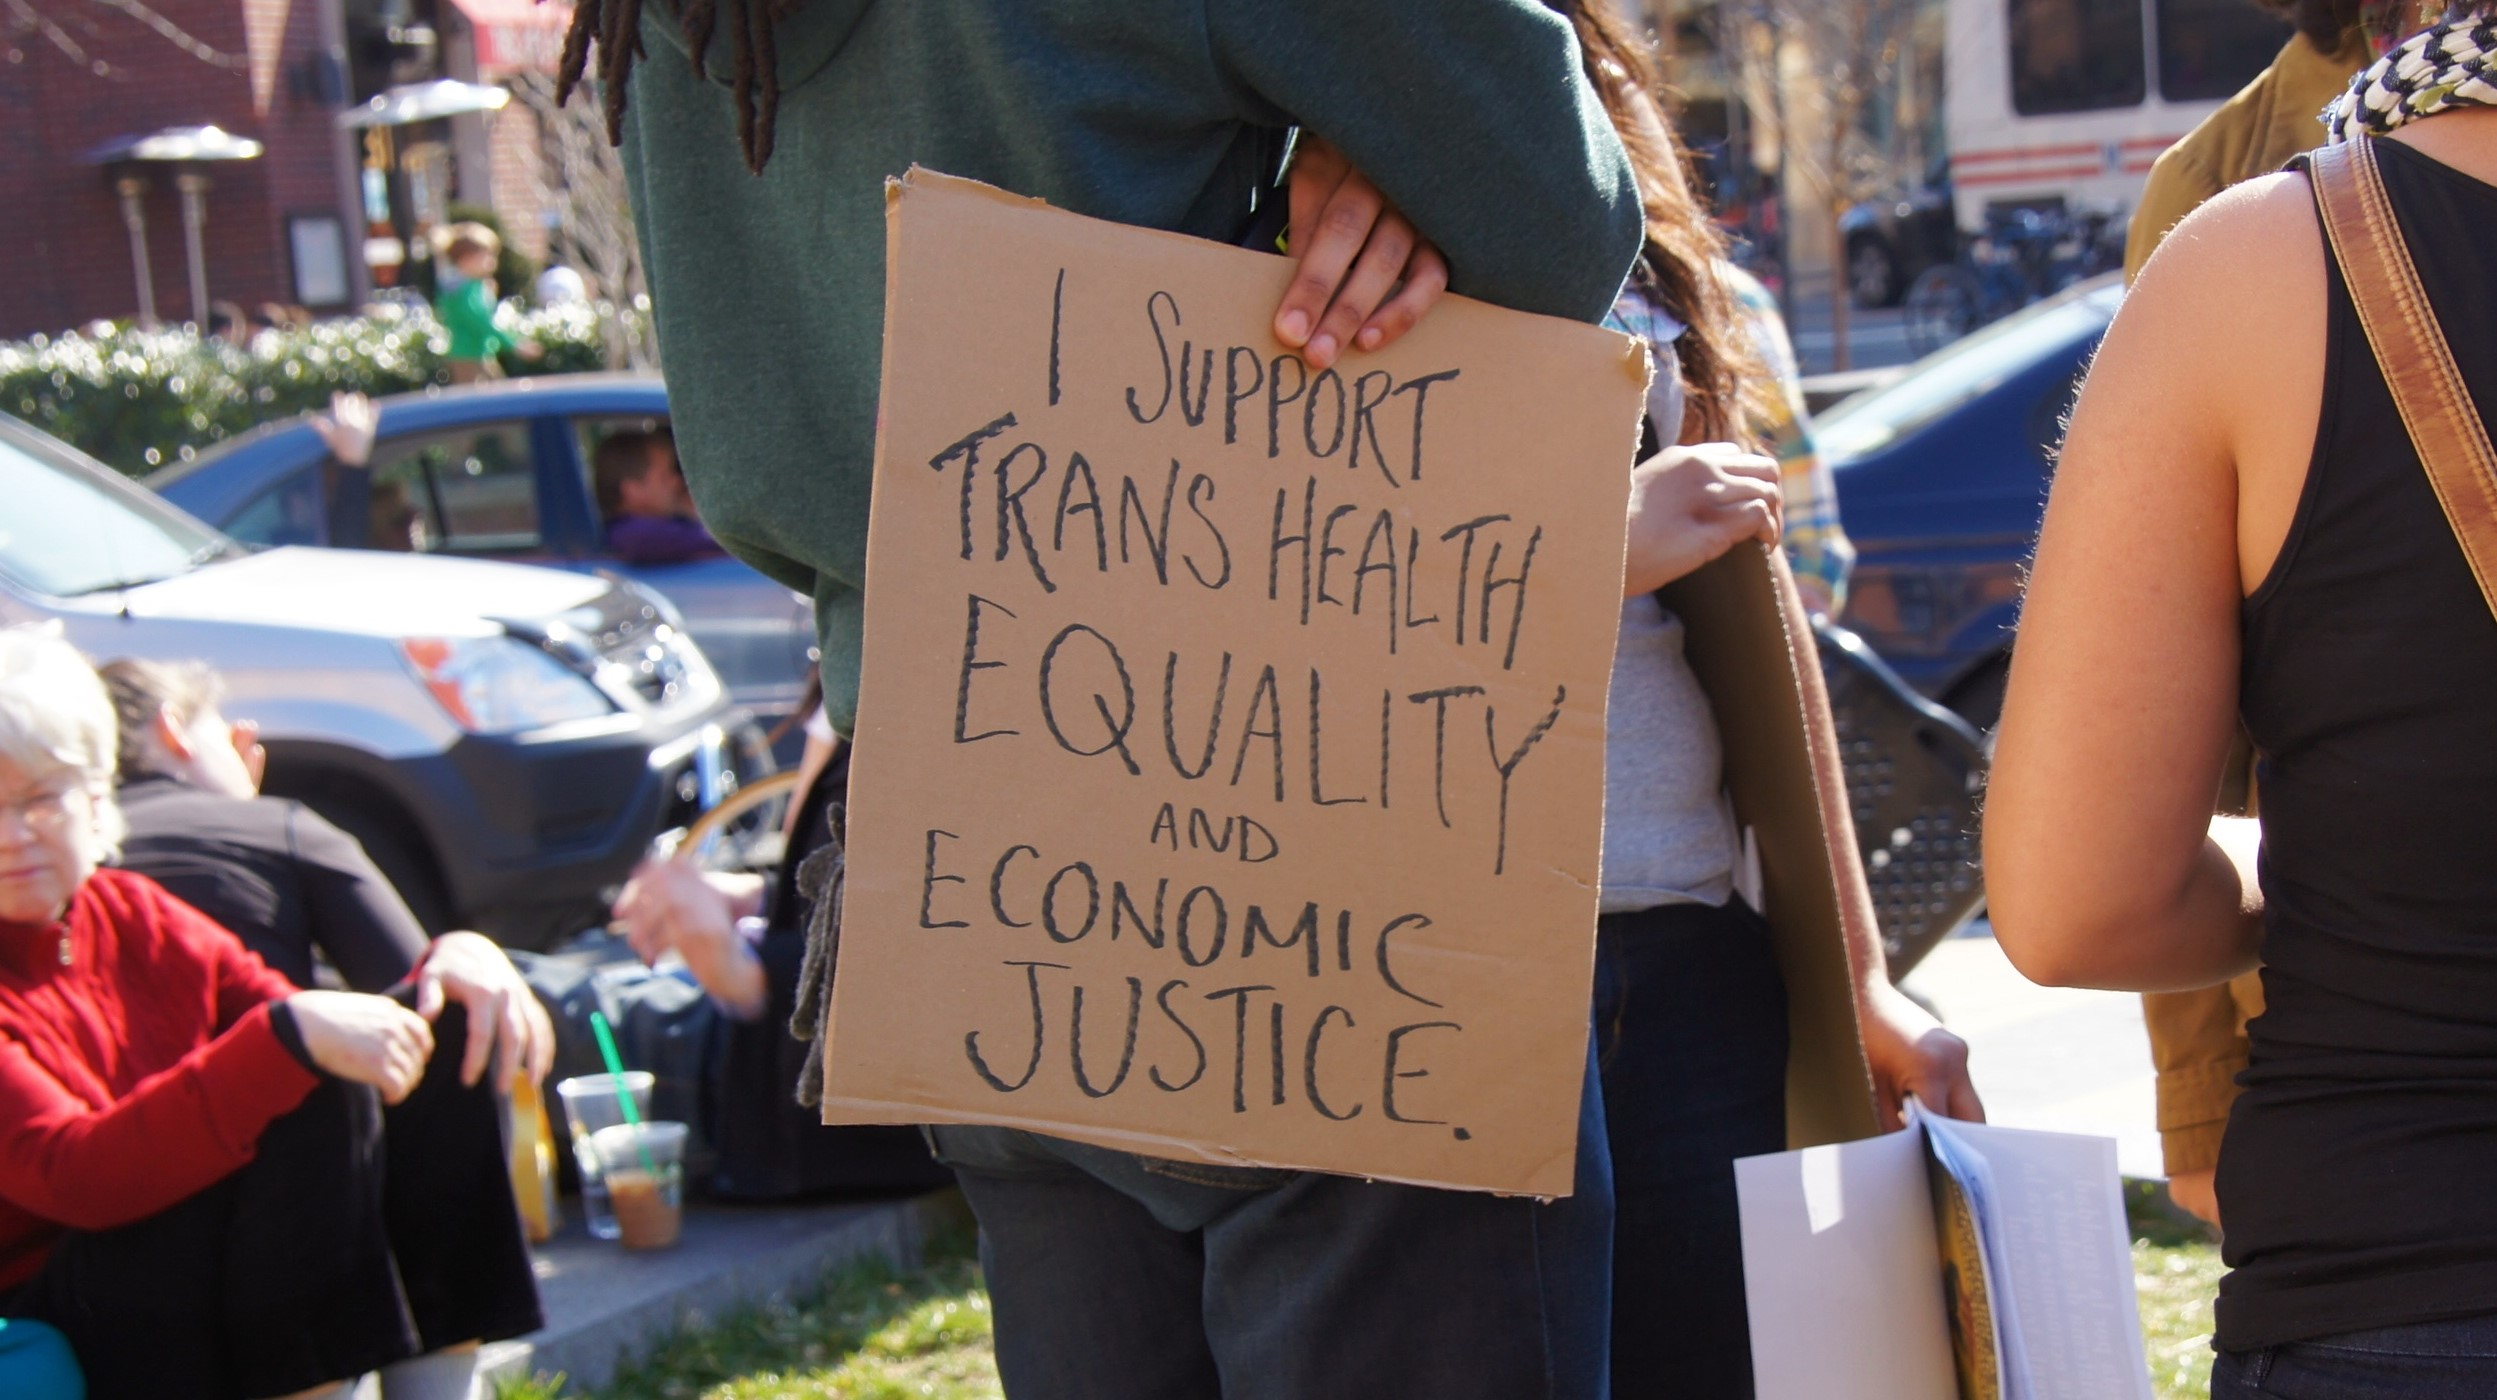 See: https://www.facebook.com/events/501459483222848/ A rally in Washington, DC in support of the equal health and livelihood of trans people, that included basic information about trans health issues and stories of denied / inappropriate care, as well as hope for the future